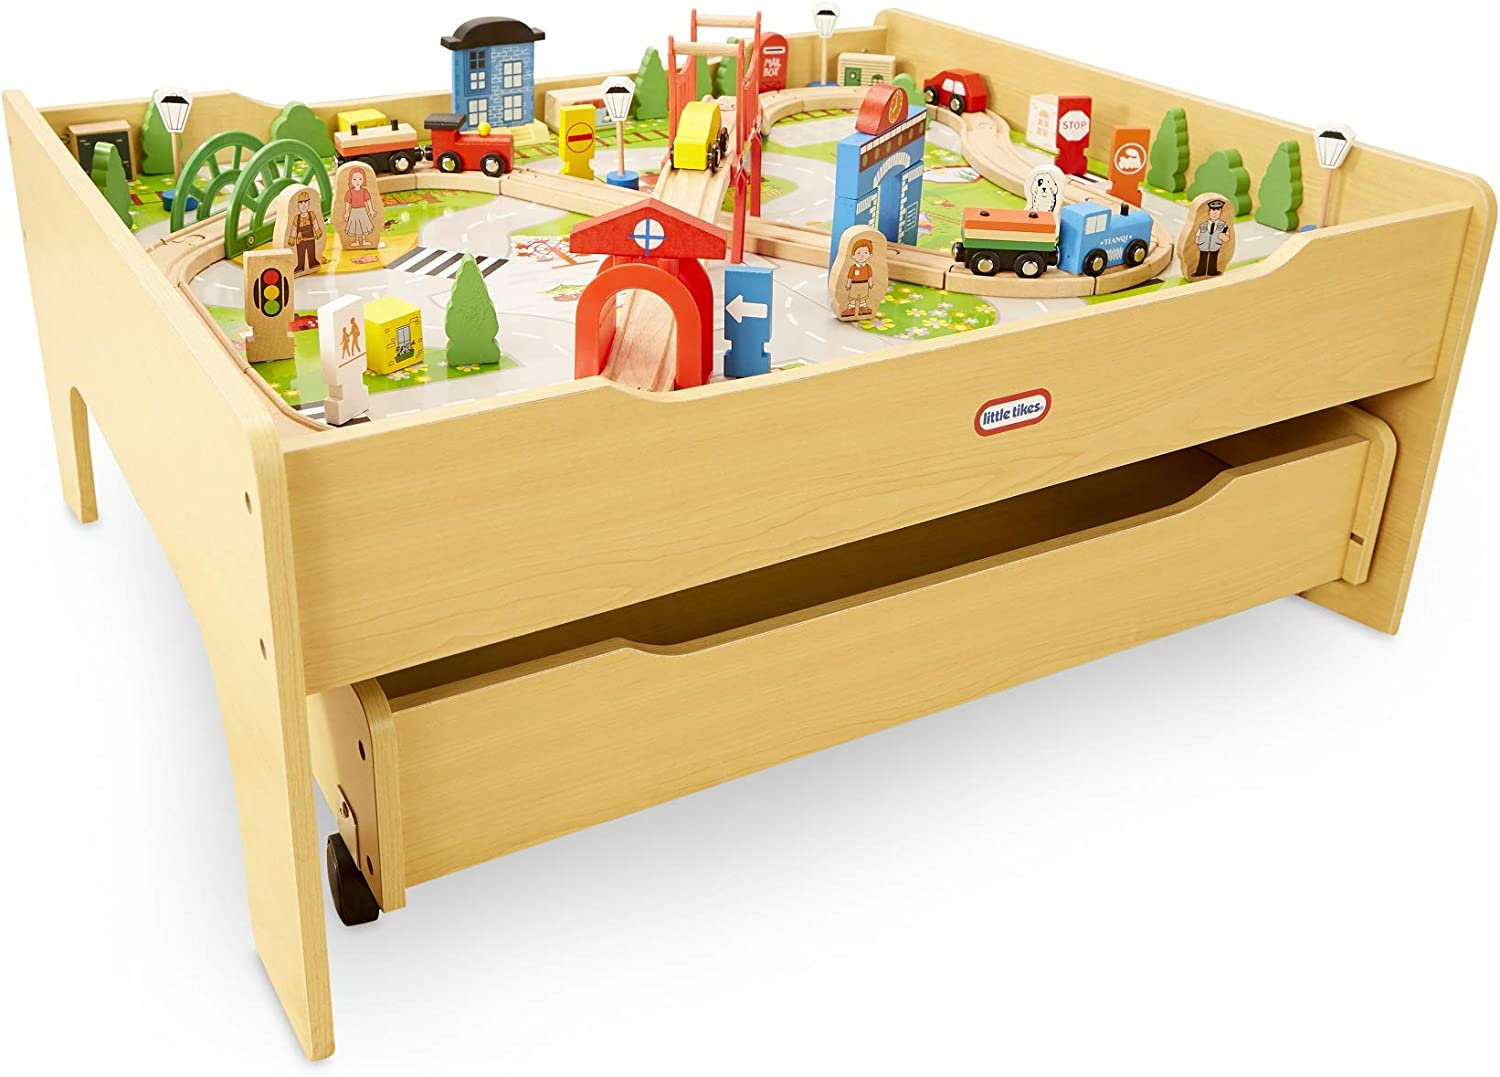 Little Tikes Real Wooden Train Table Set for Kids